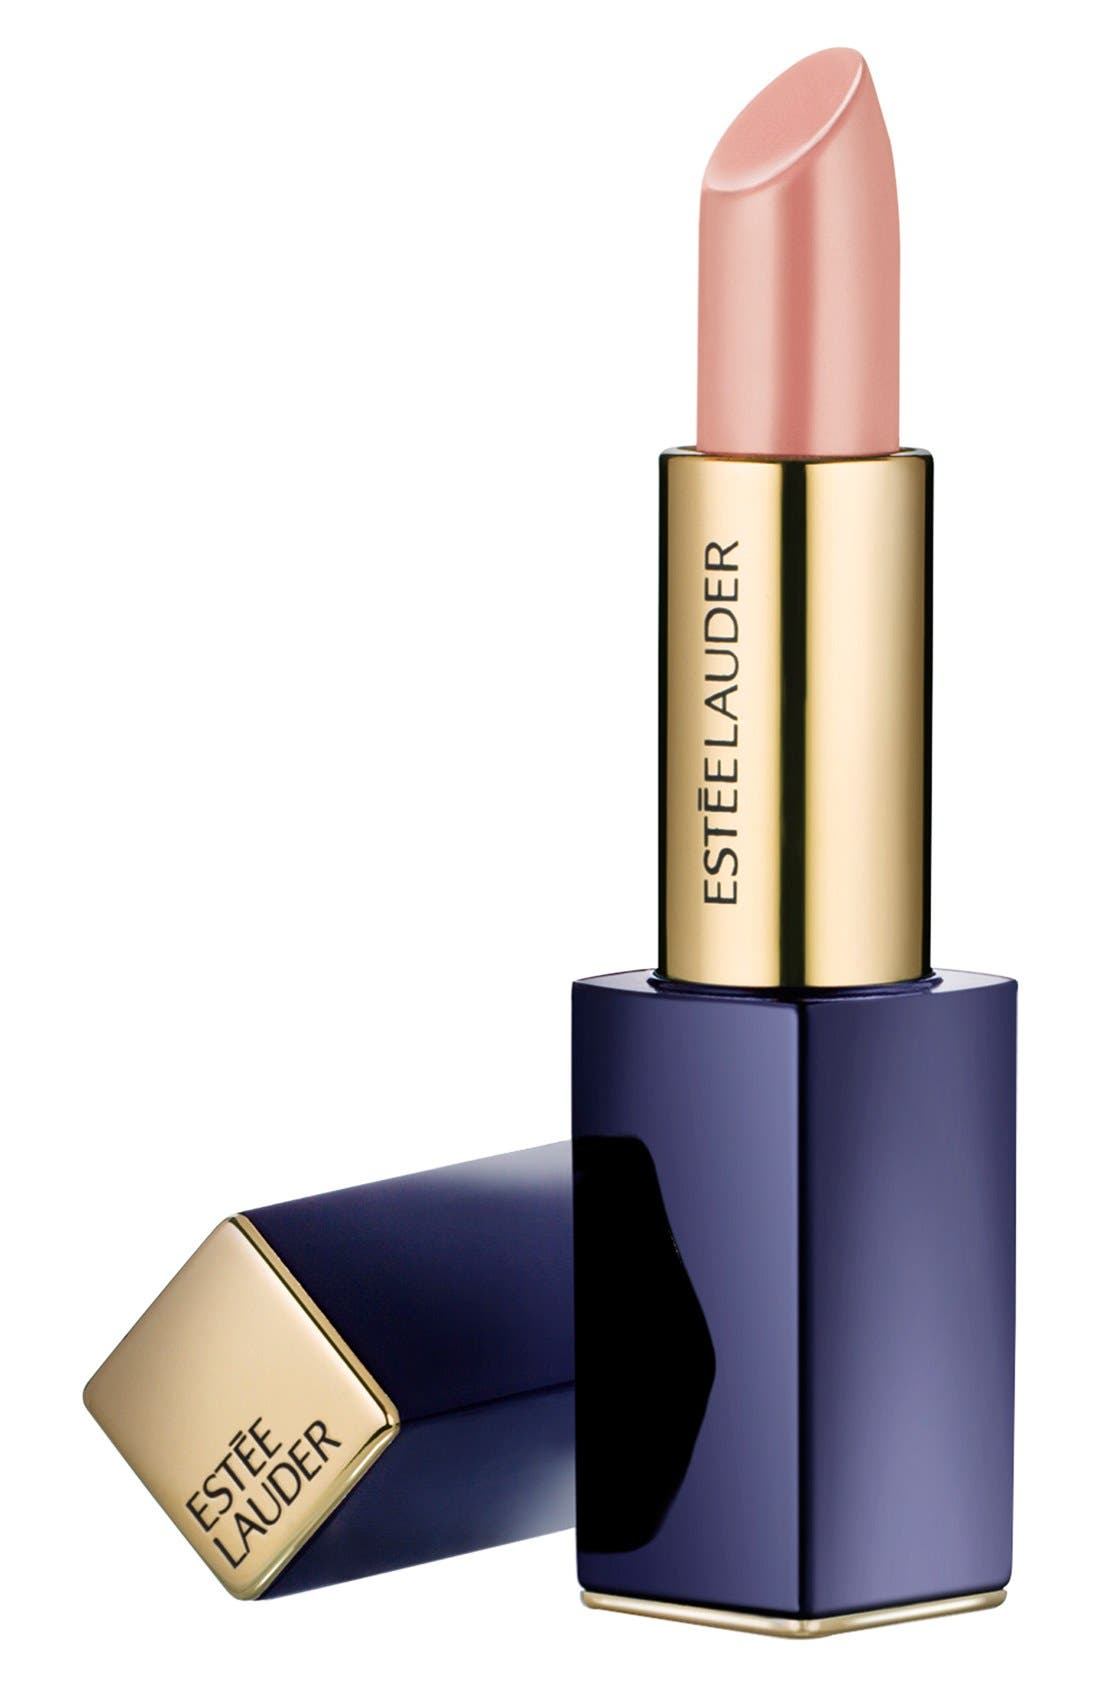 Pure Color Envy Sculpting Lipstick,                             Main thumbnail 1, color,                             INSATIABLE IVORY